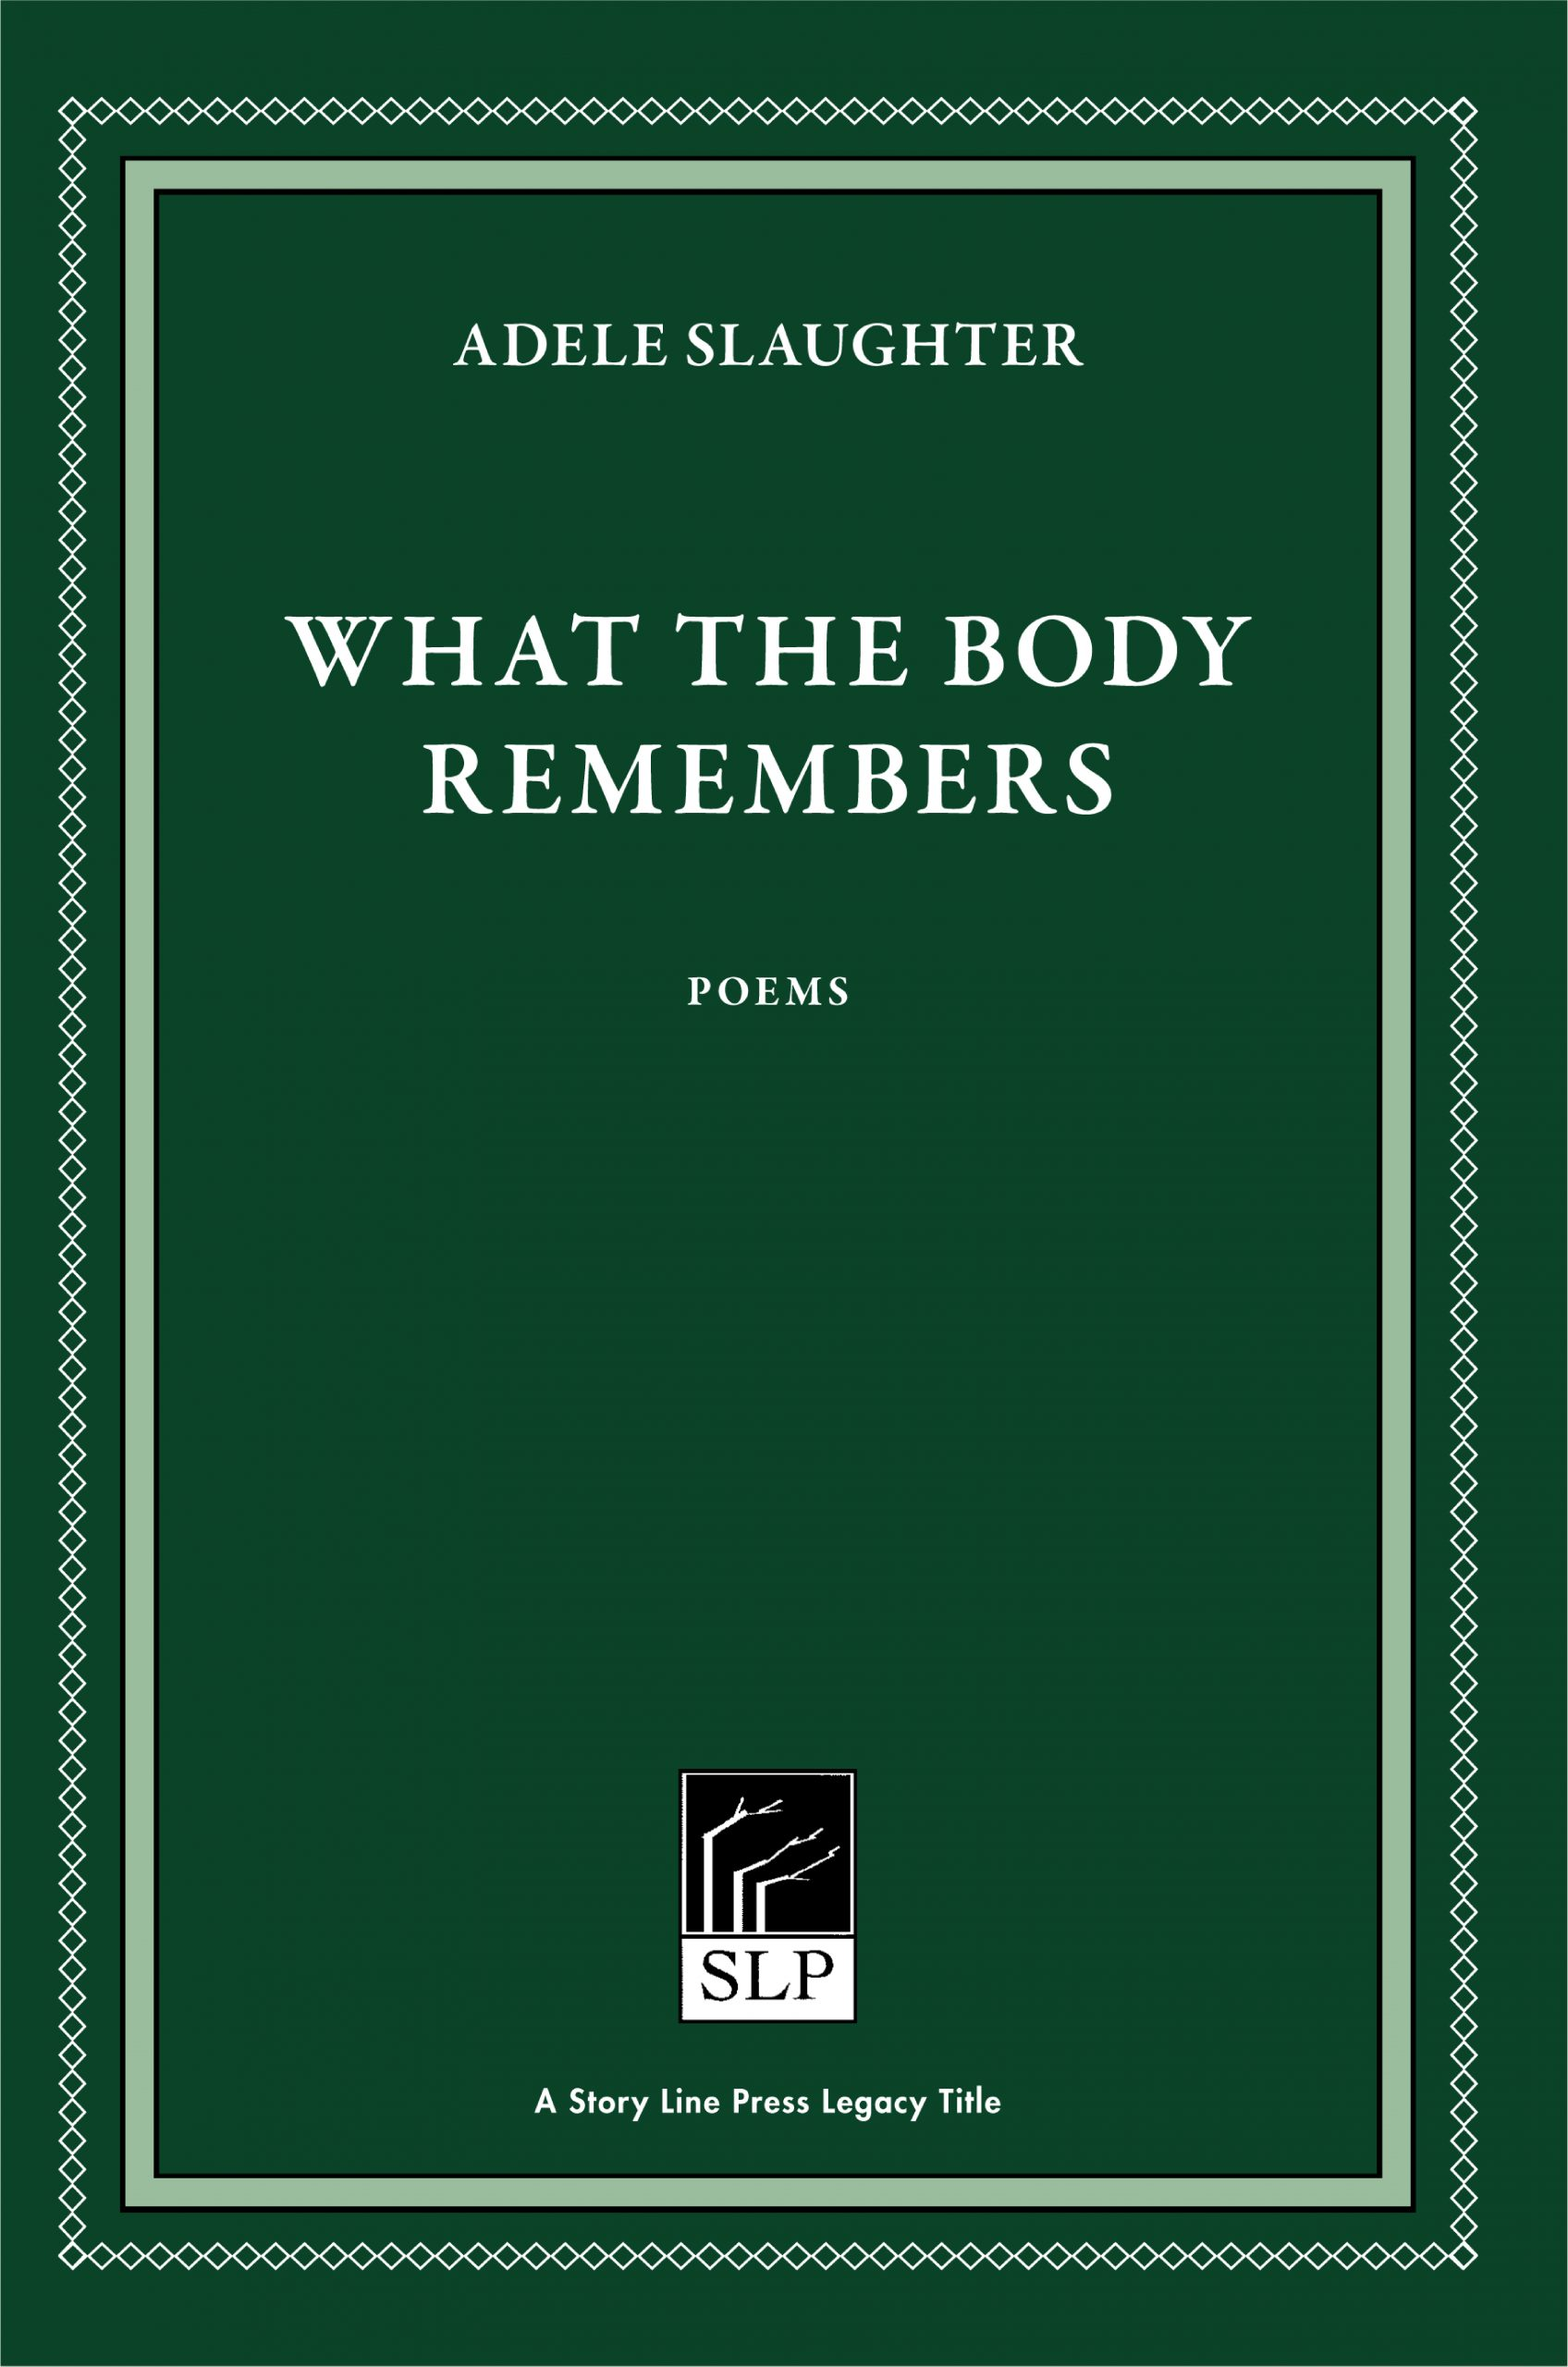 Story Line Press legacy tittle, Adele Slaughter What the Body Remembers Poem, white script text against emerald green background.